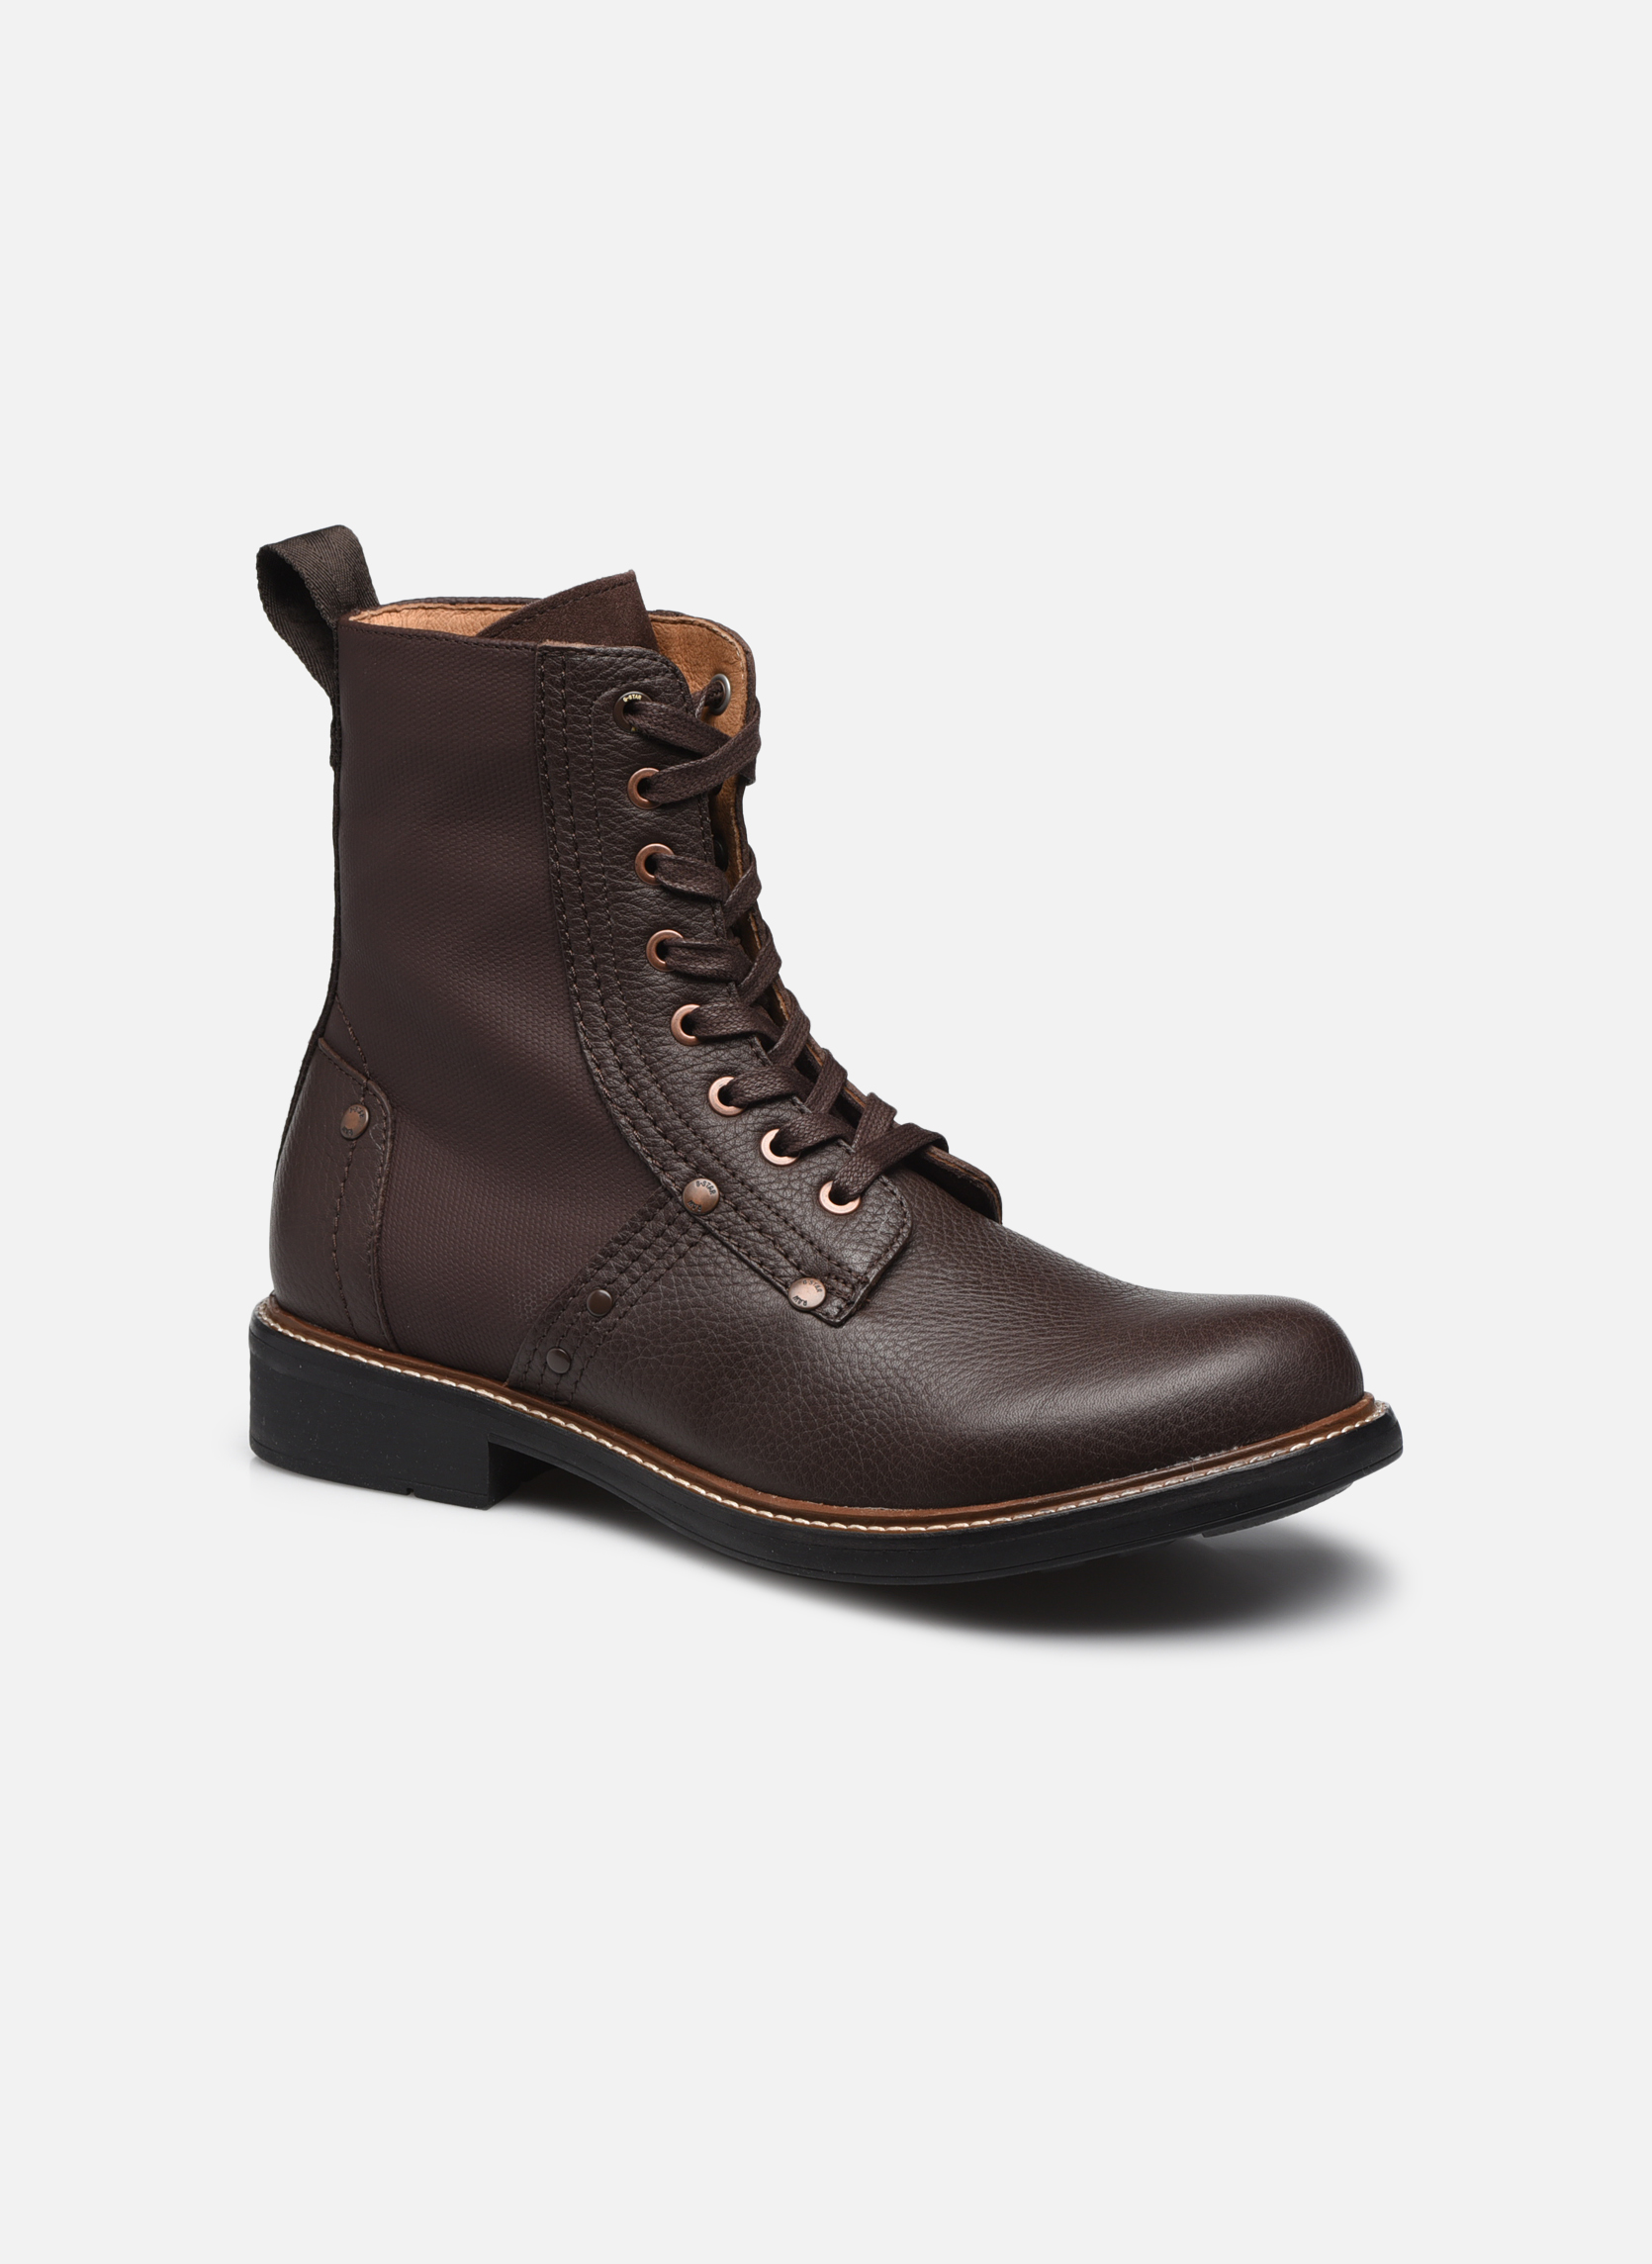 Bottines et boots G-Star Labour Marron vue détail/paire